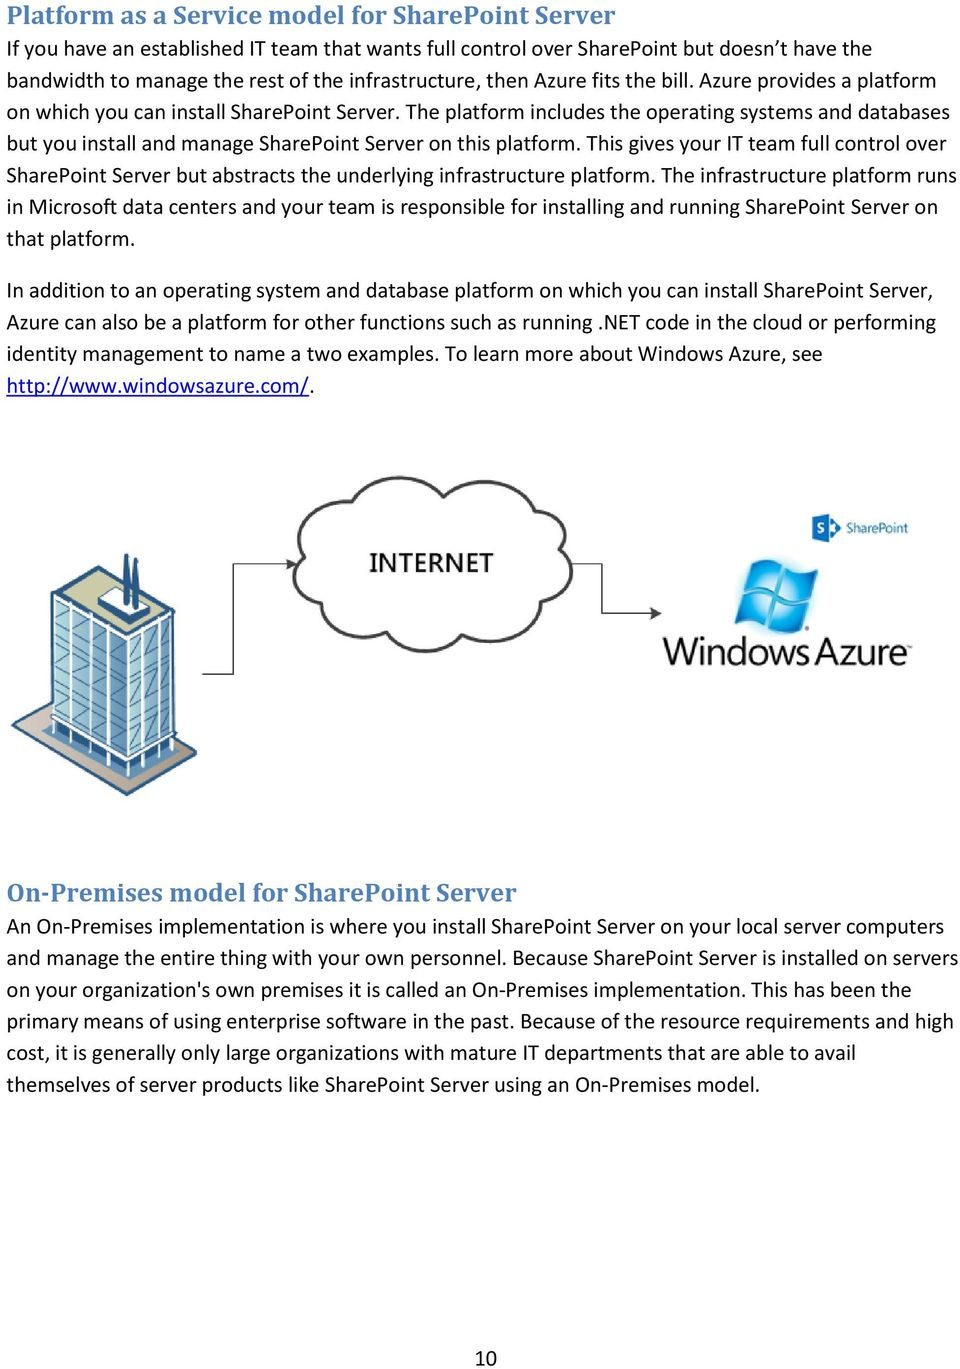 The platform includes the operating systems and databases but you install and manage SharePoint Server on this platform.